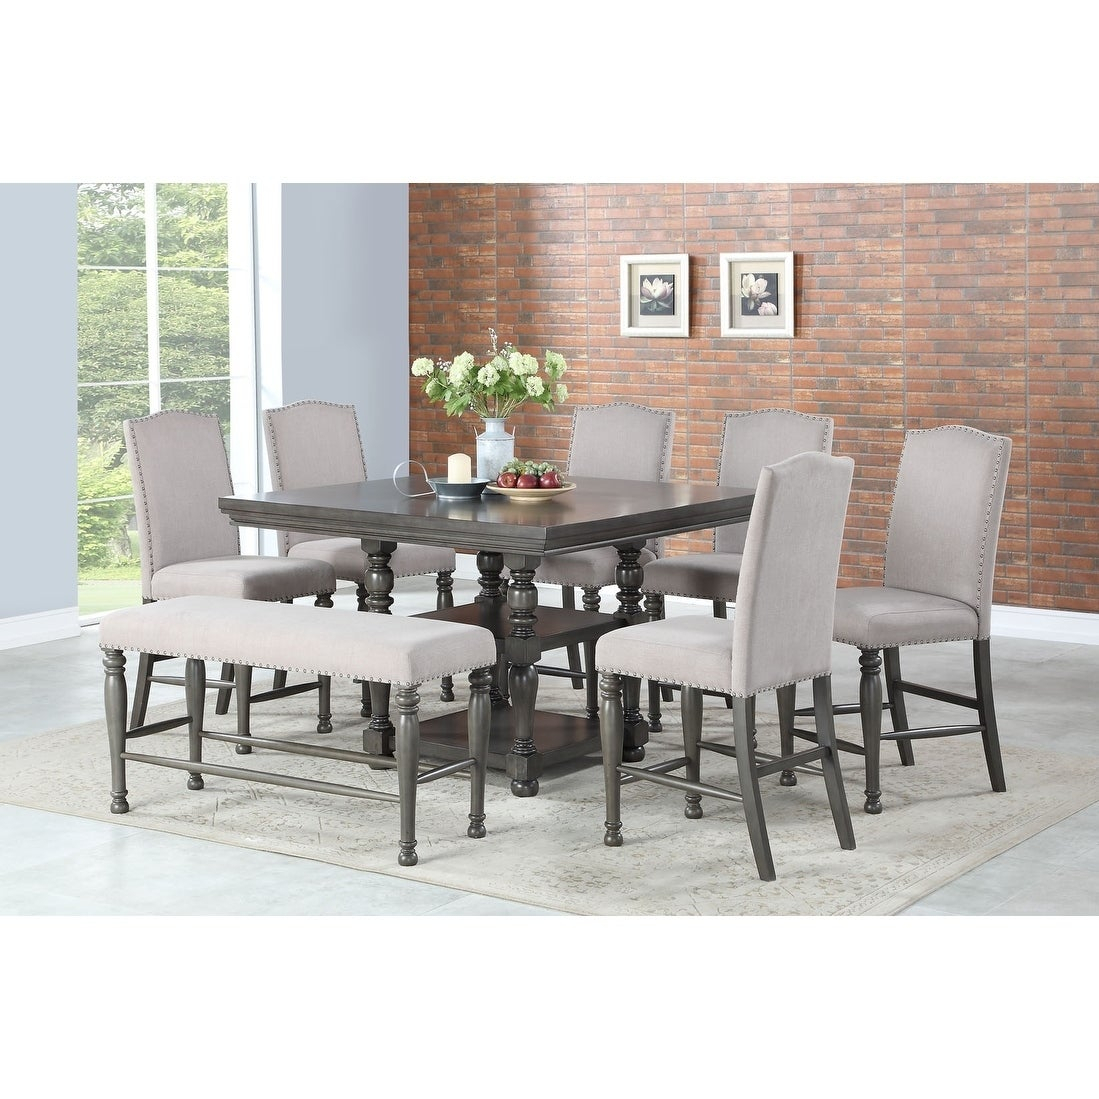 Carson Counter Height Dining Setgreyson Living Throughout Most Recently Released Carson Counter Height Tables (View 5 of 25)